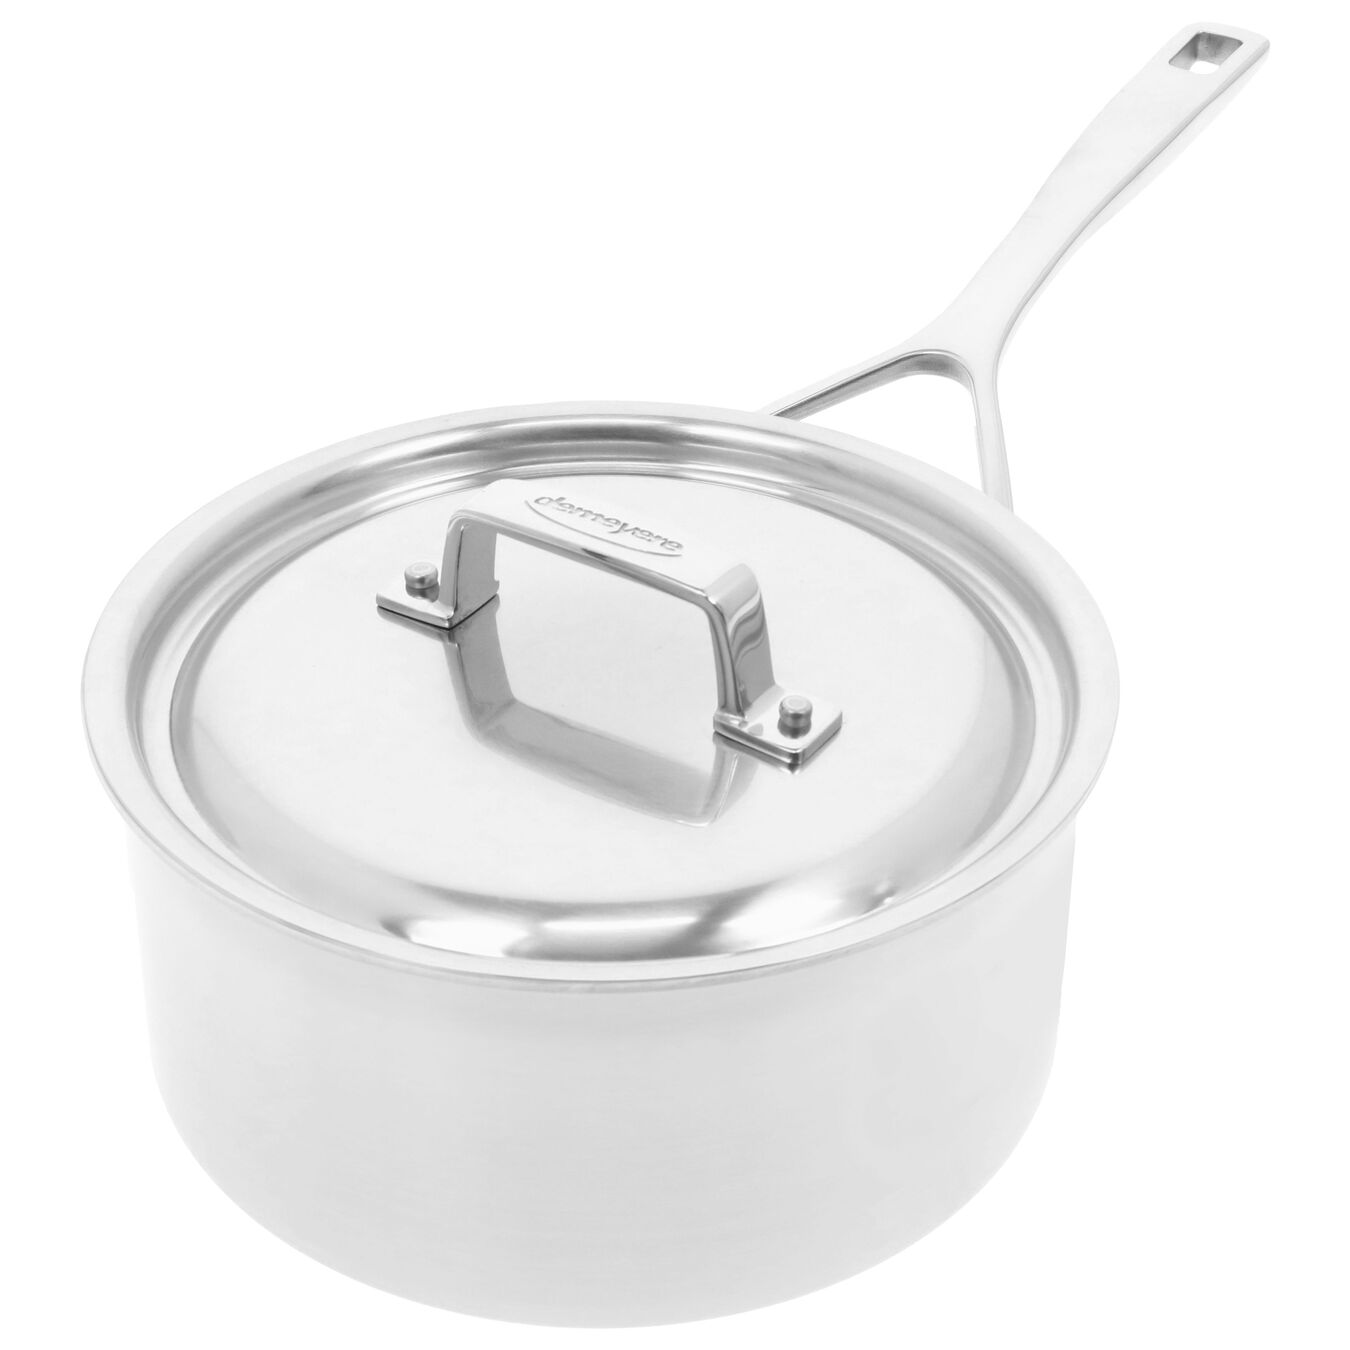 2.8 l round sauce pan with lid 3QT, silver,,large 3